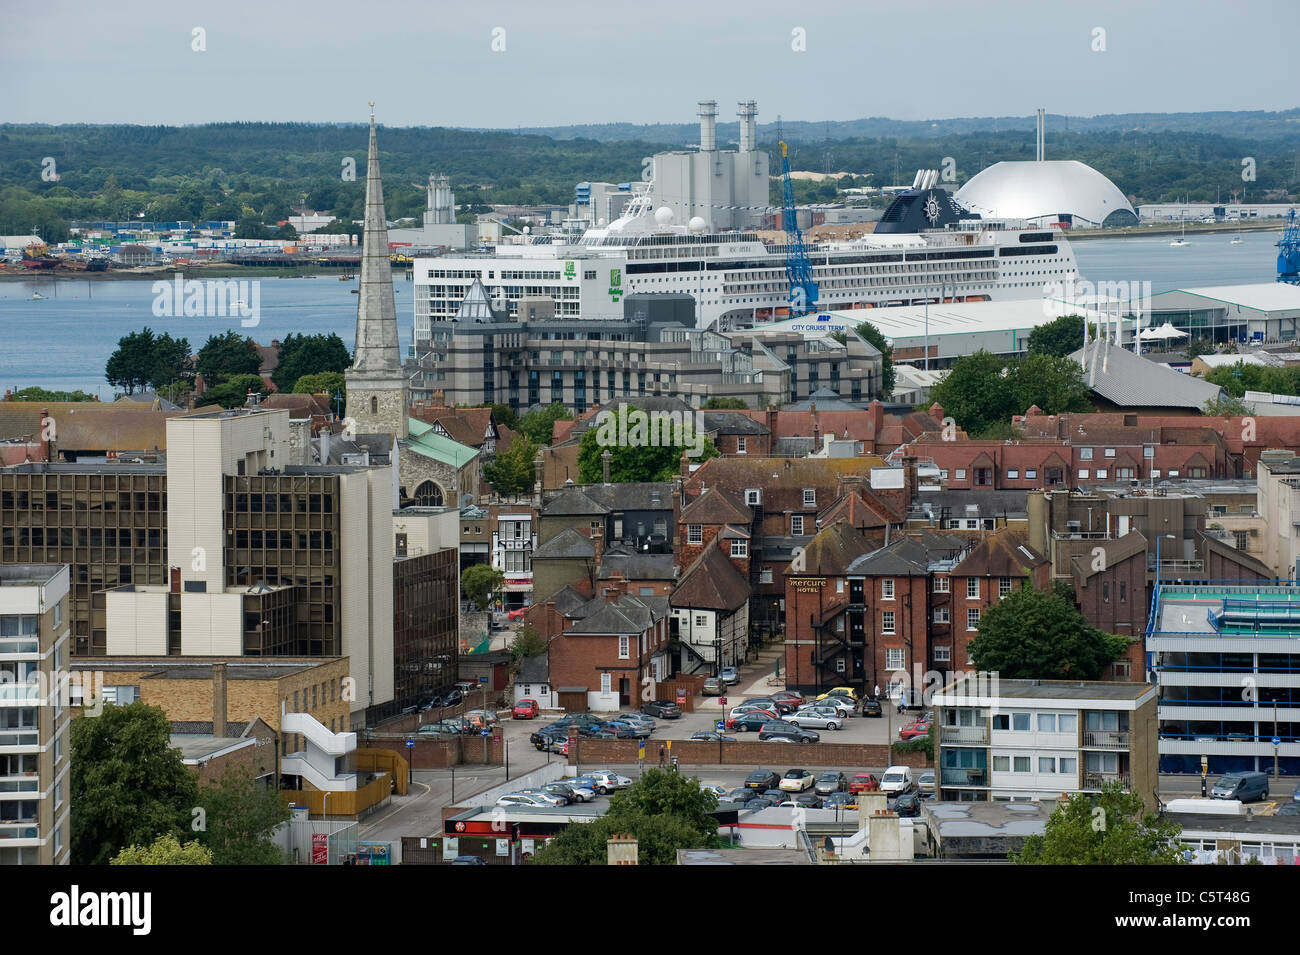 Southampton City centre, England - rooftop view - Stock Image